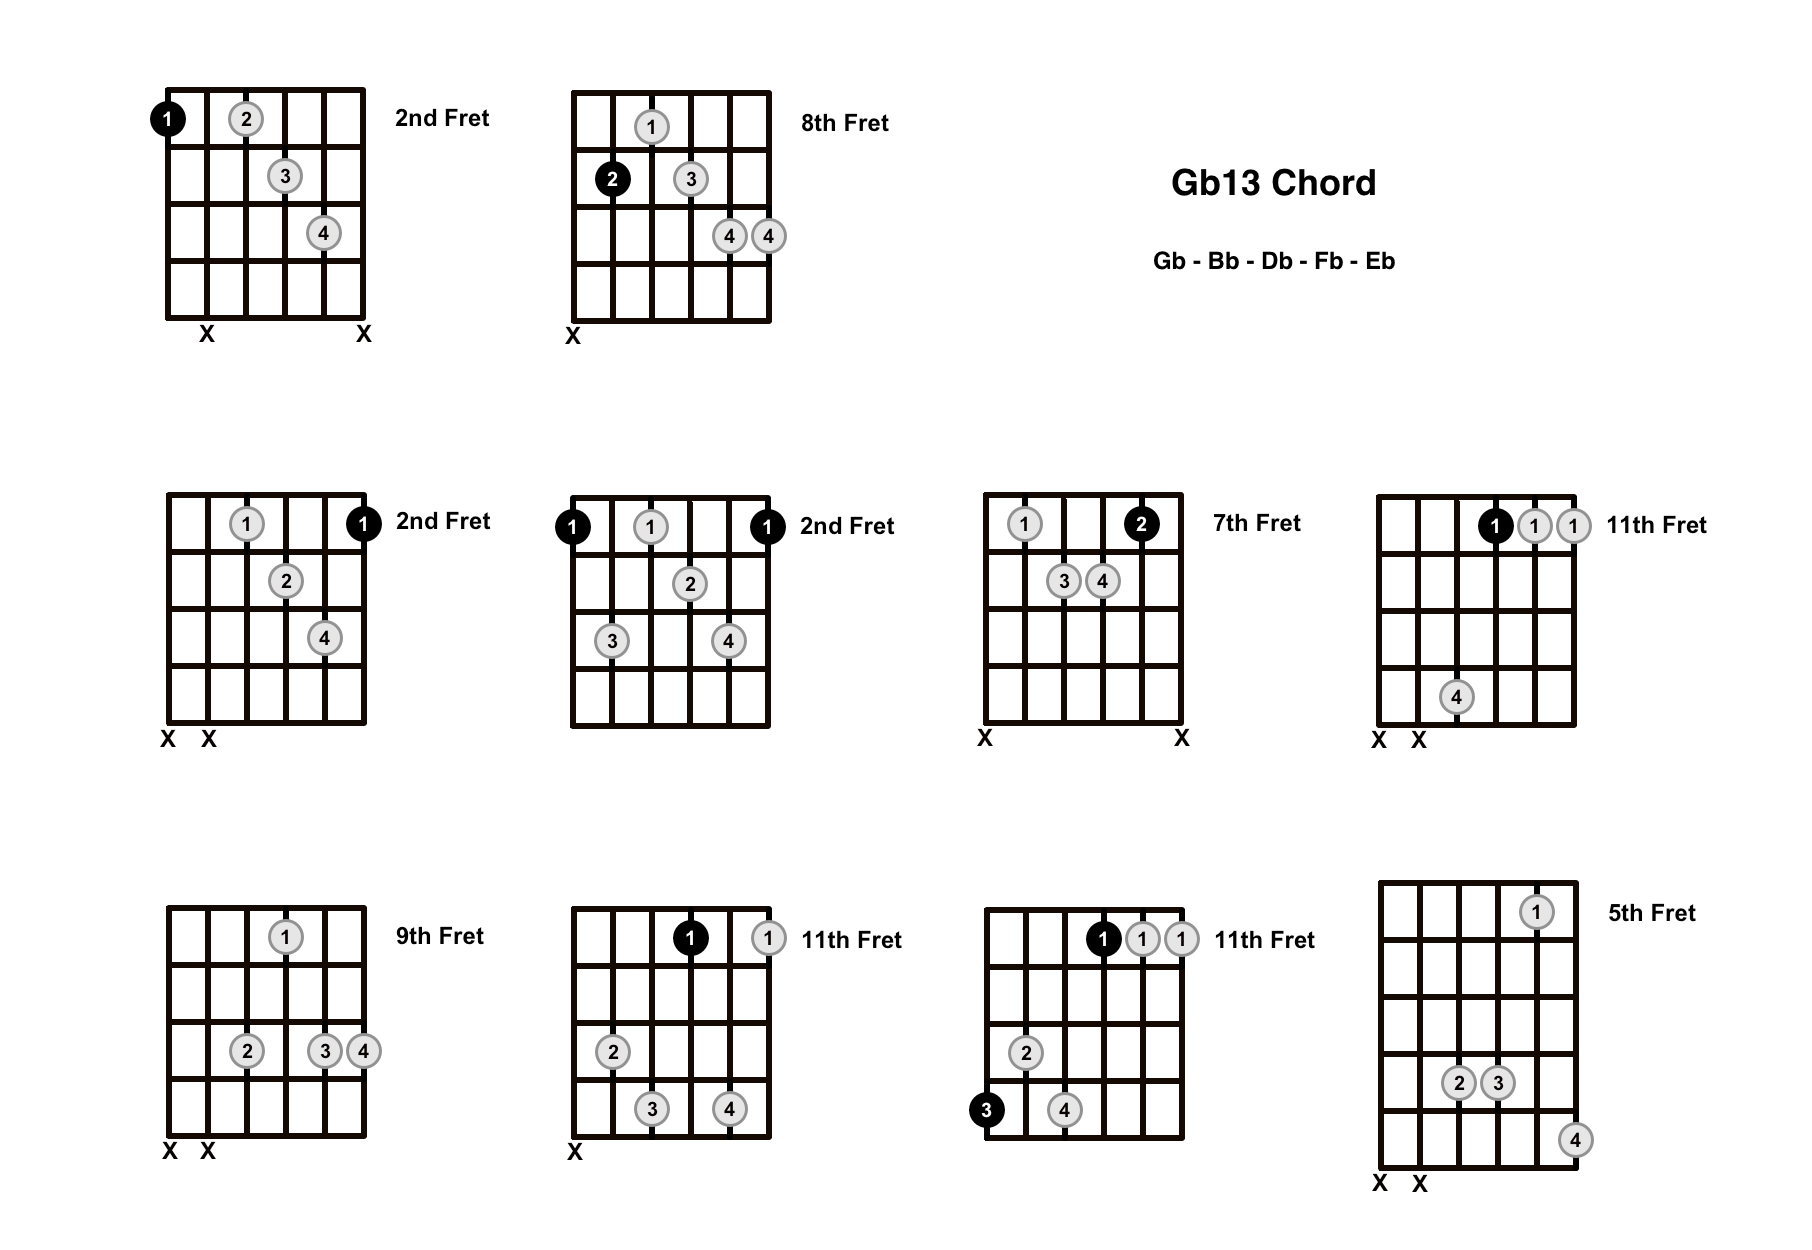 Gb13 Chord On The Guitar (G Flat 13) – Diagrams, Finger Positions and Theory